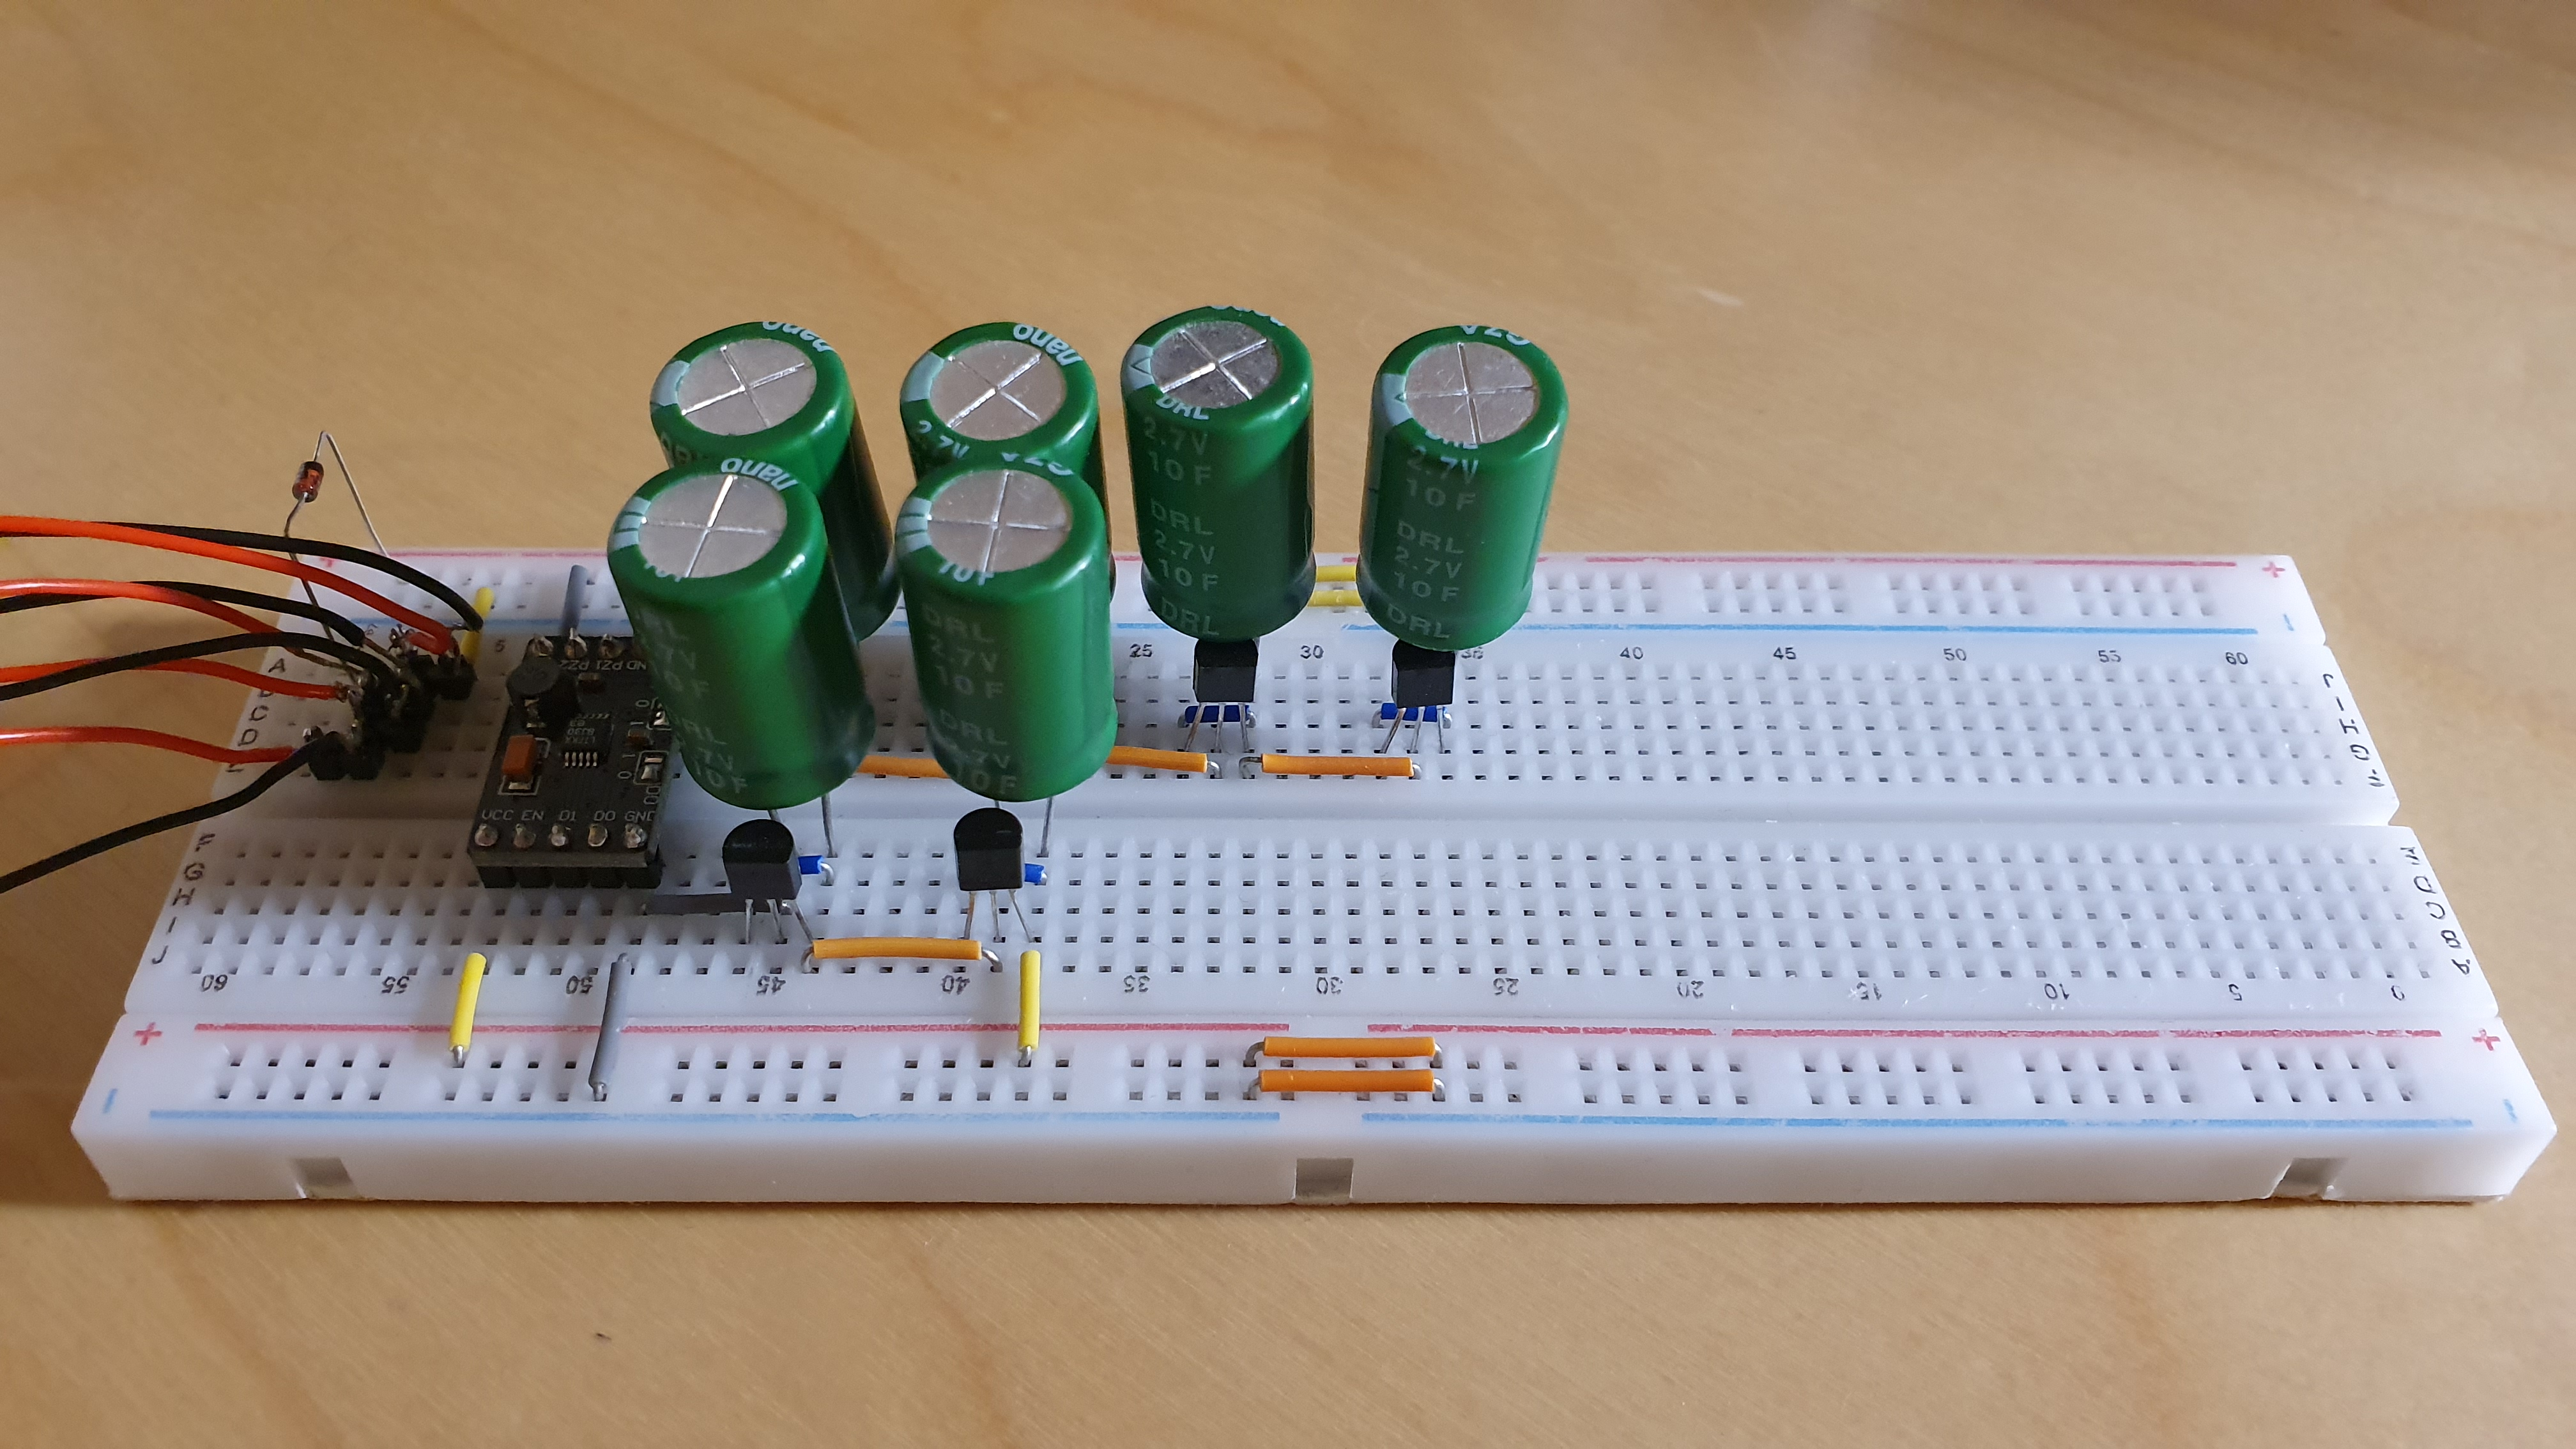 Energy harvester with 3.3 V output and supercapacitors